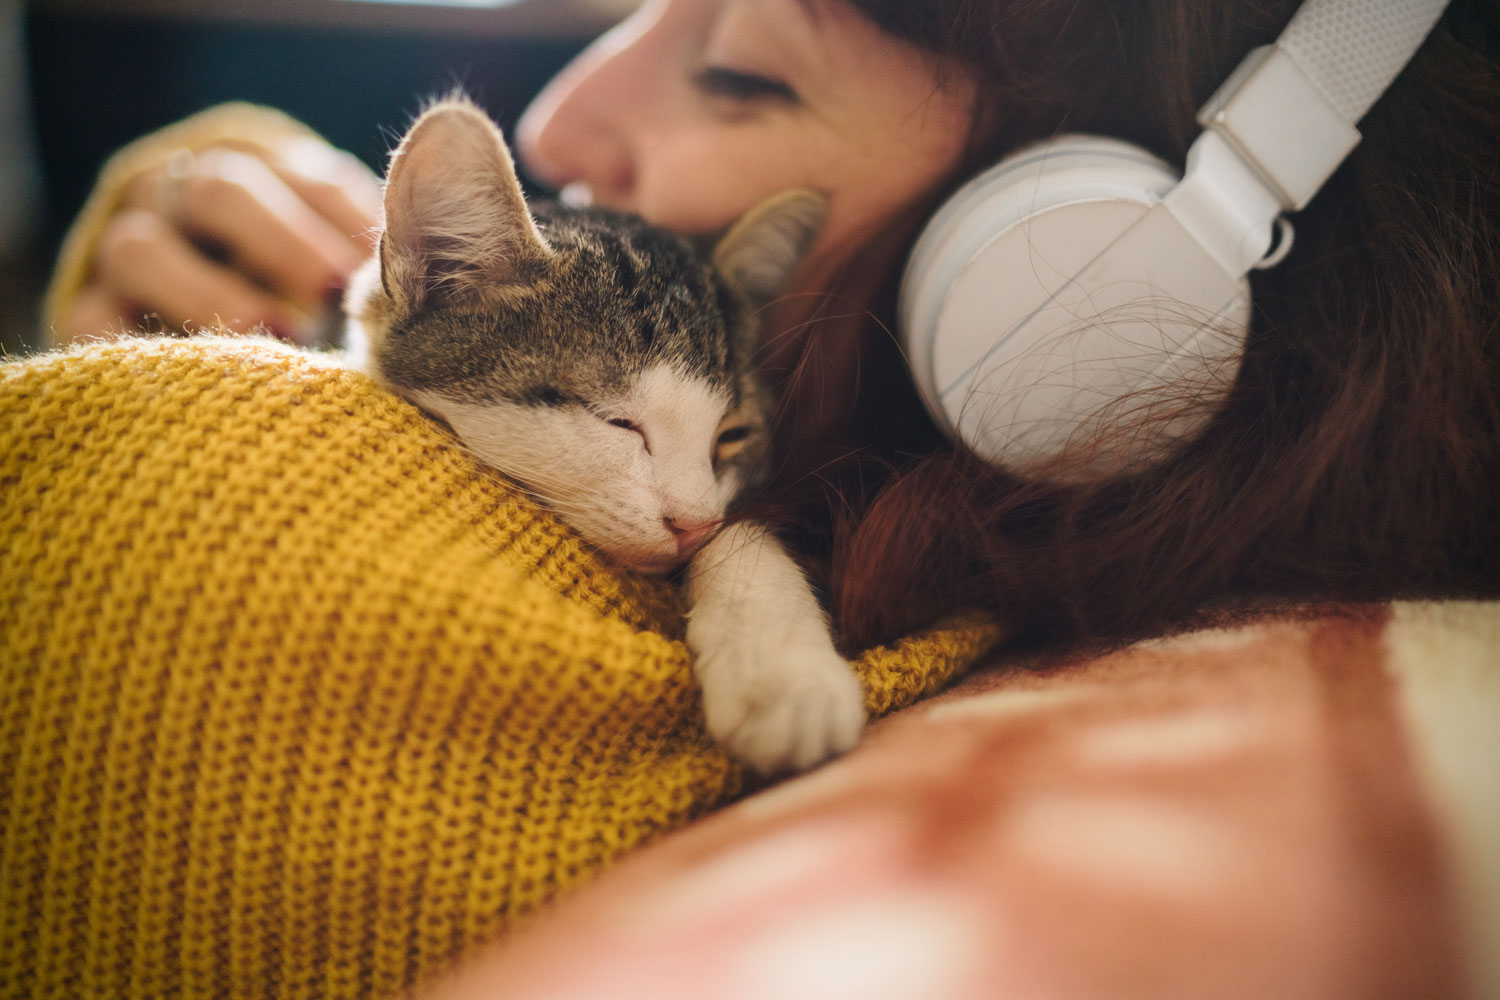 A young woman wearing headphones and petting a cat lying in front of her